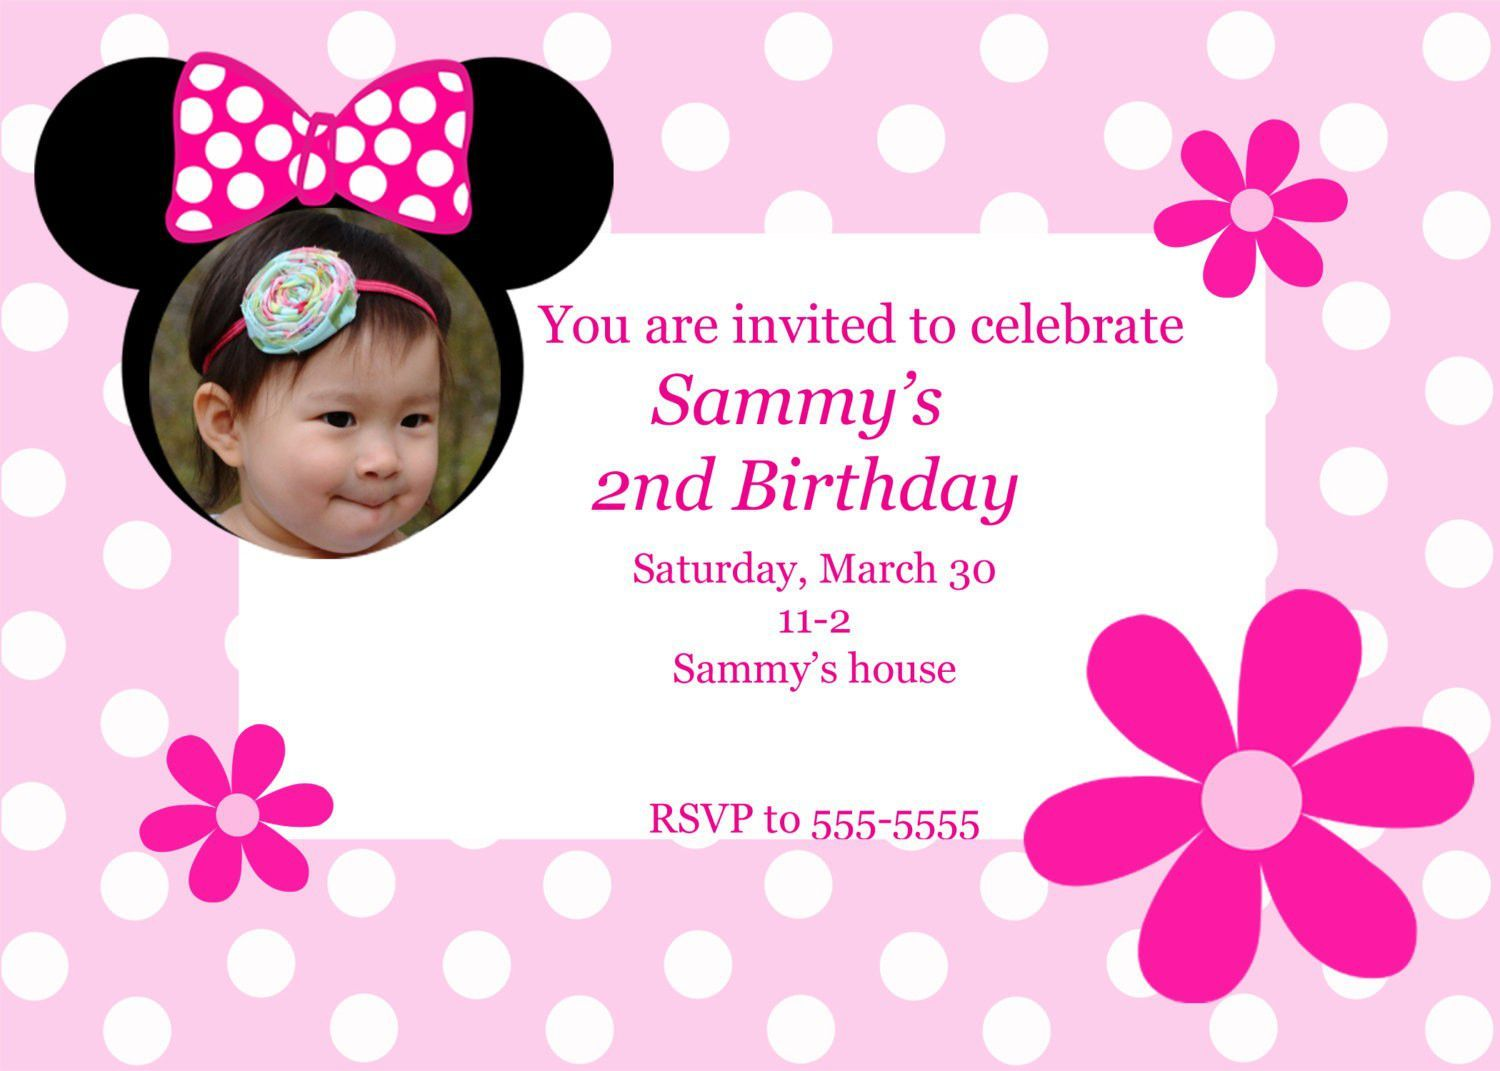 2nd birthday party invitation wording samples ; 94fcf9a7d0aa8e5e6bd971401f1256dd